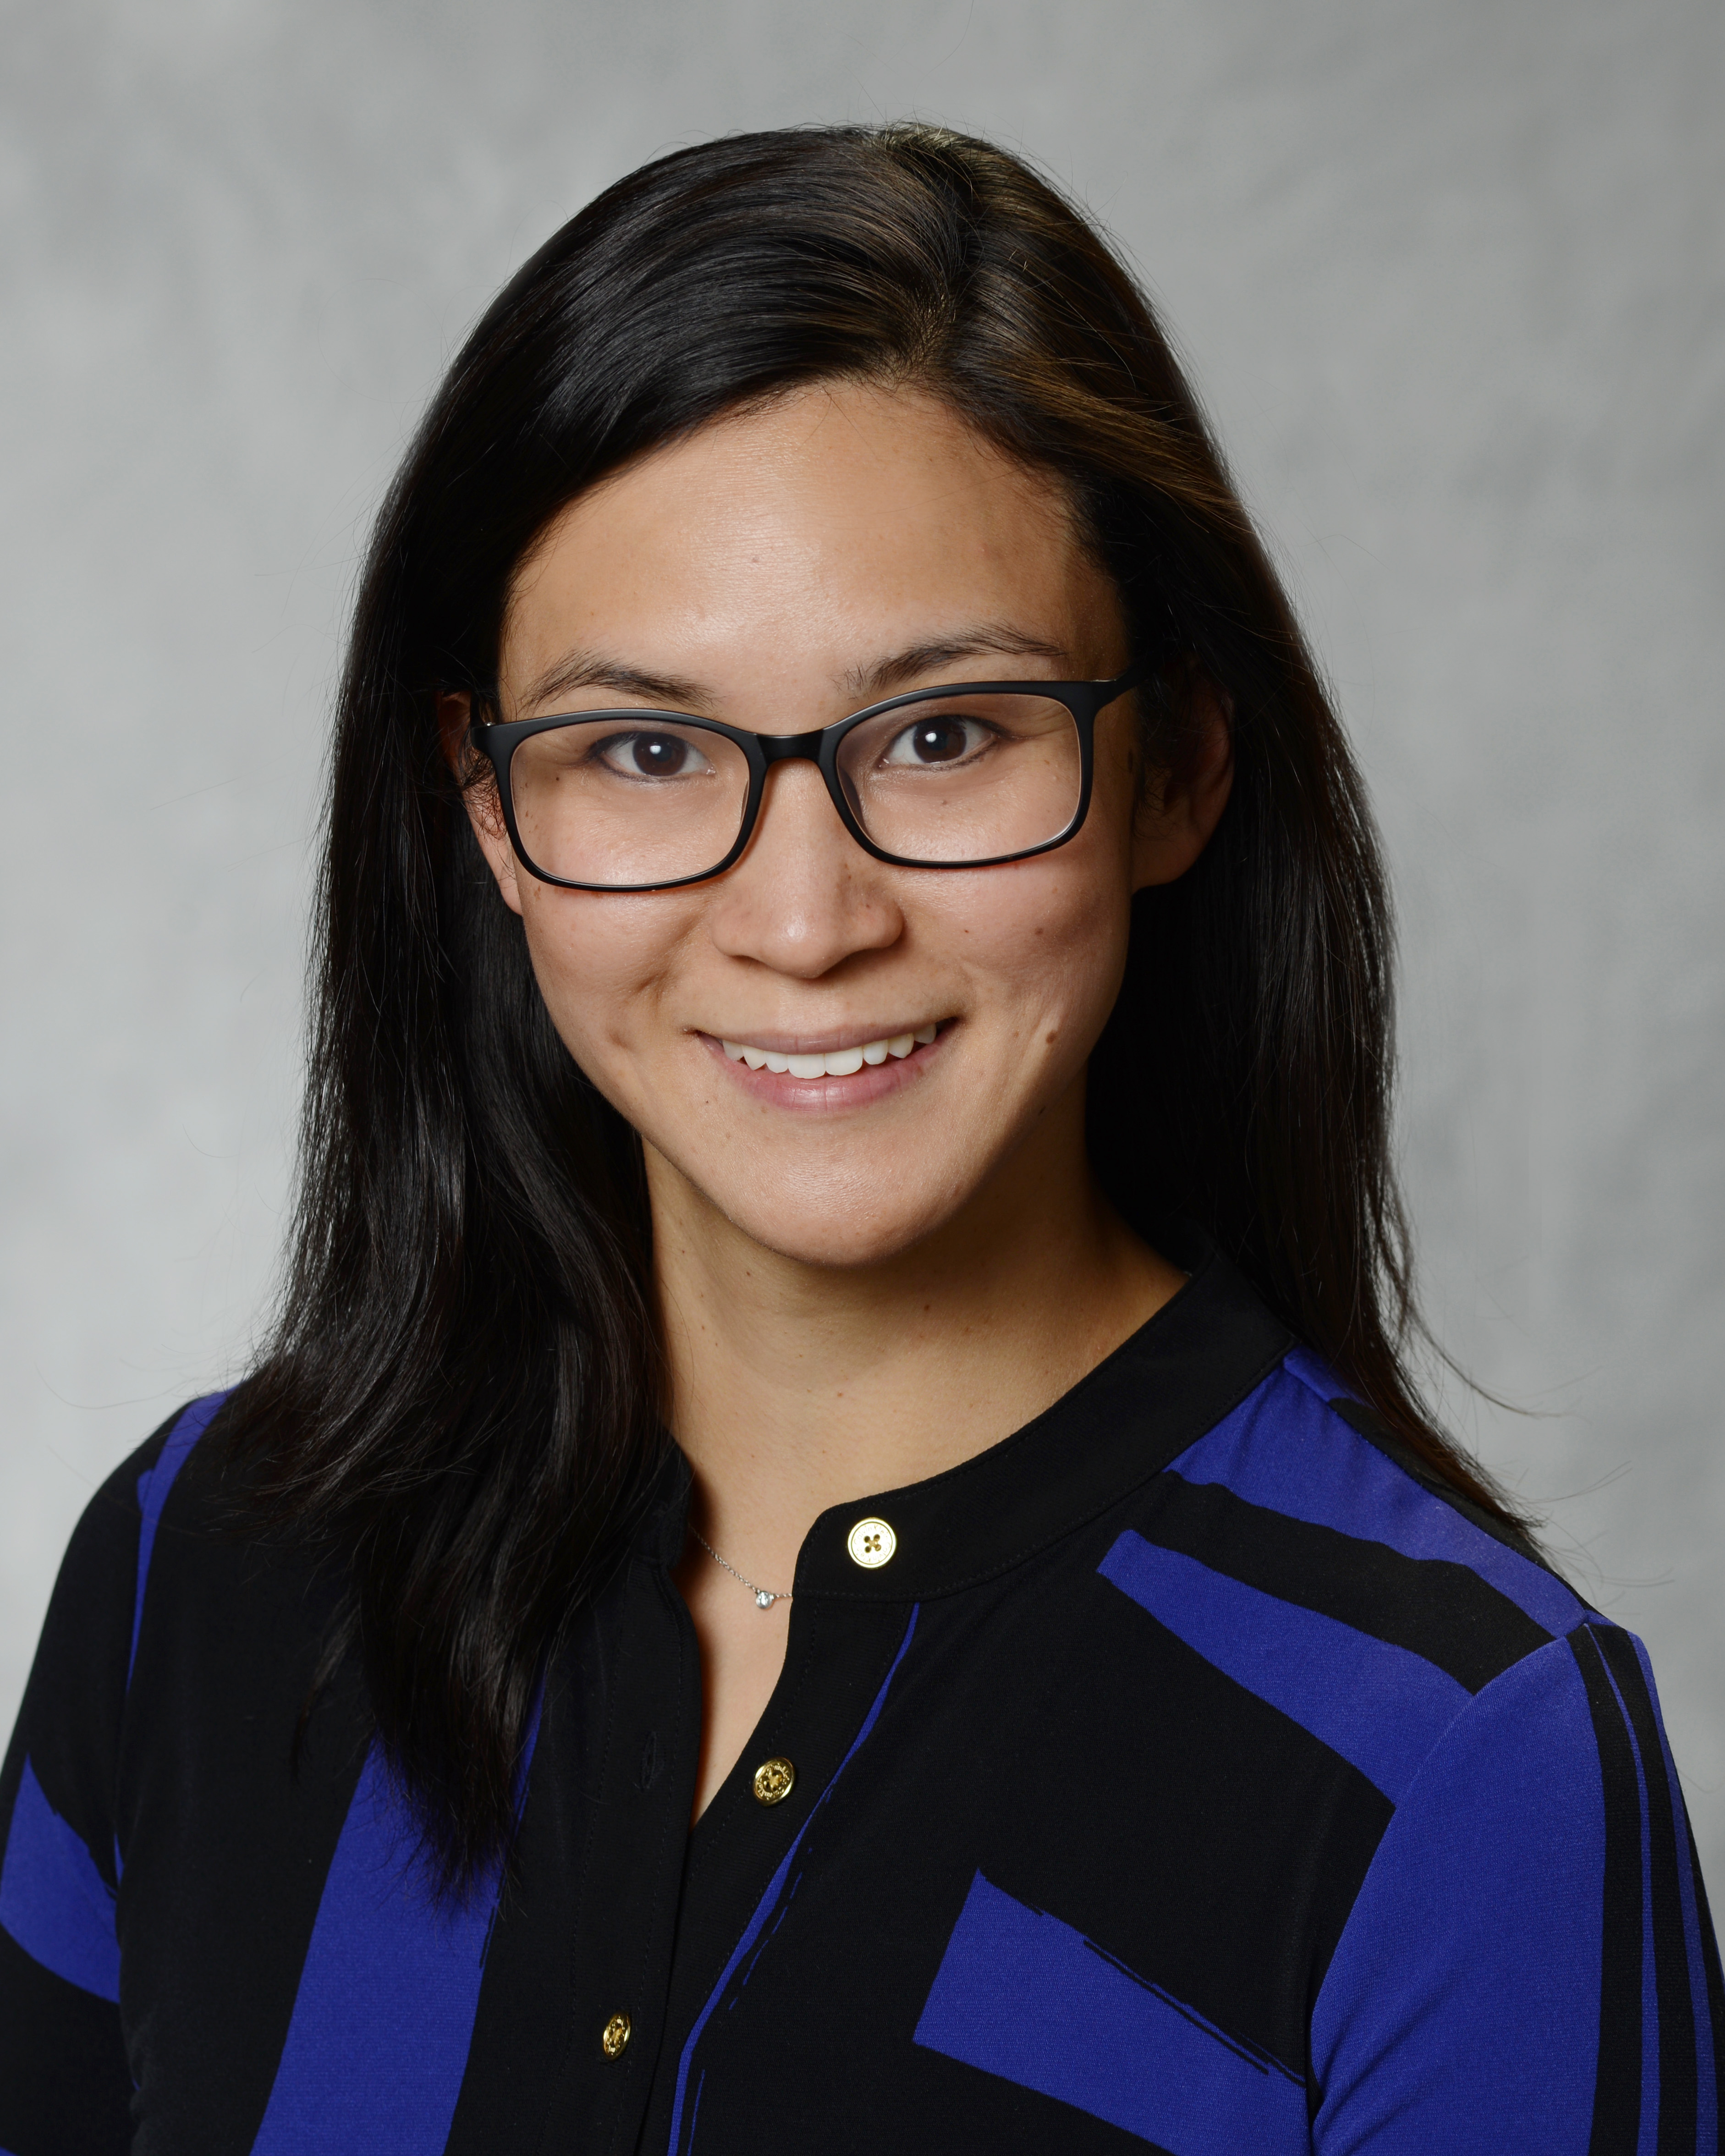 Tammy Chang, MD, MPH, MS